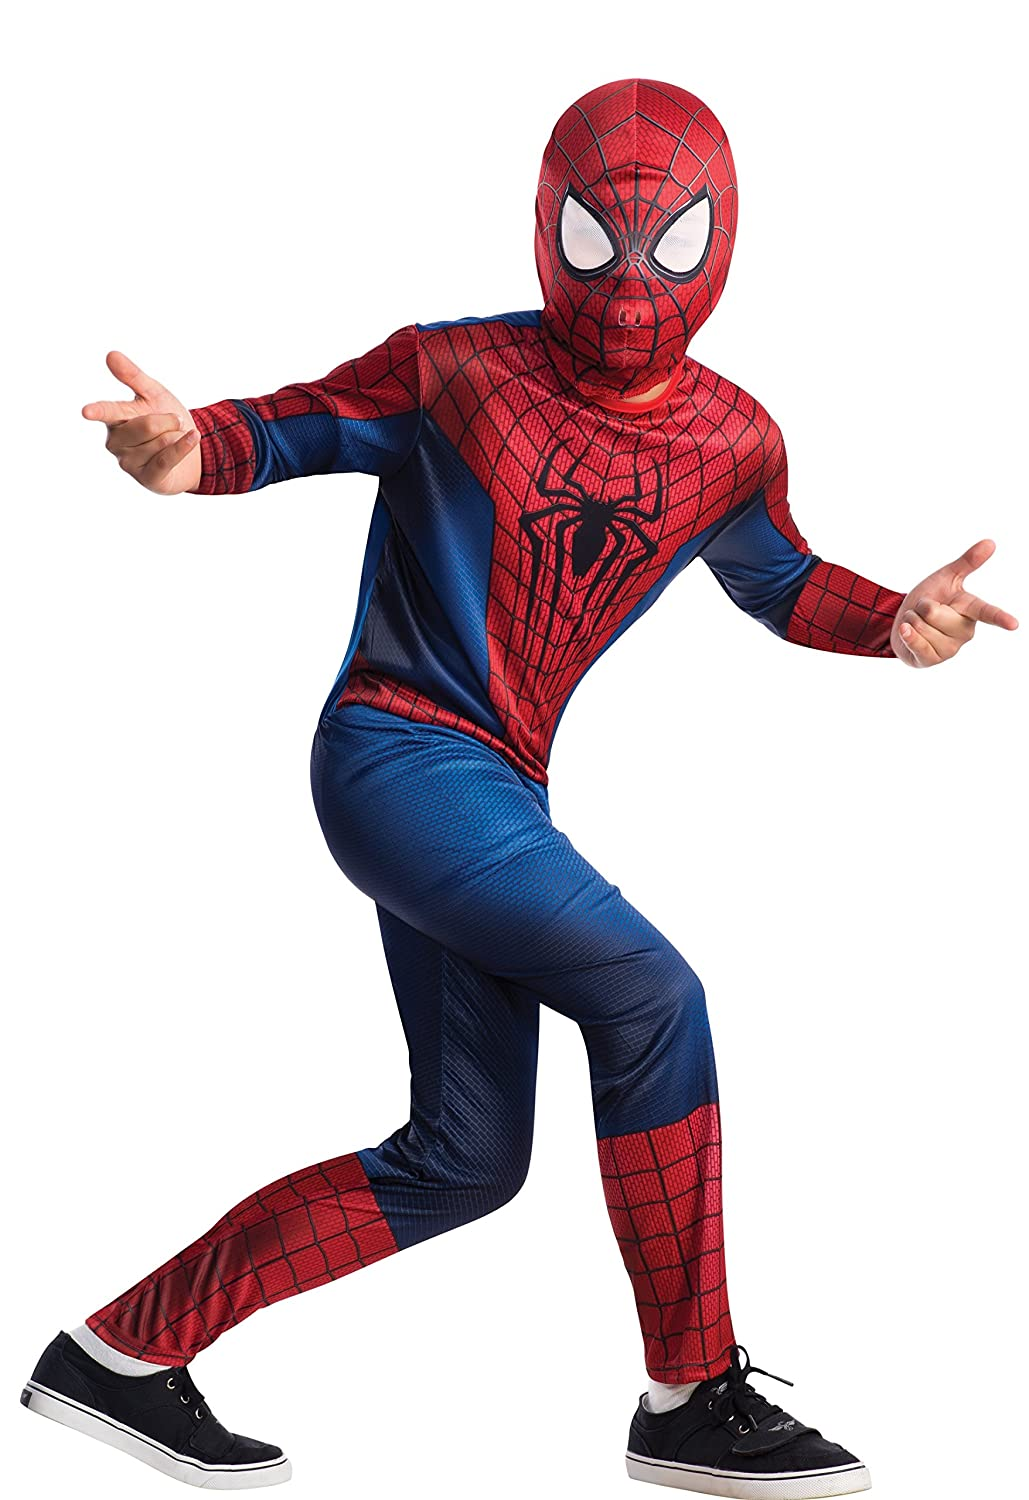 Amazon.com The Amazing Spider-man 2 Spider-man Value Costume Child Medium (8-10) Toys u0026 Games  sc 1 st  Amazon.com & Amazon.com: The Amazing Spider-man 2 Spider-man Value Costume ...